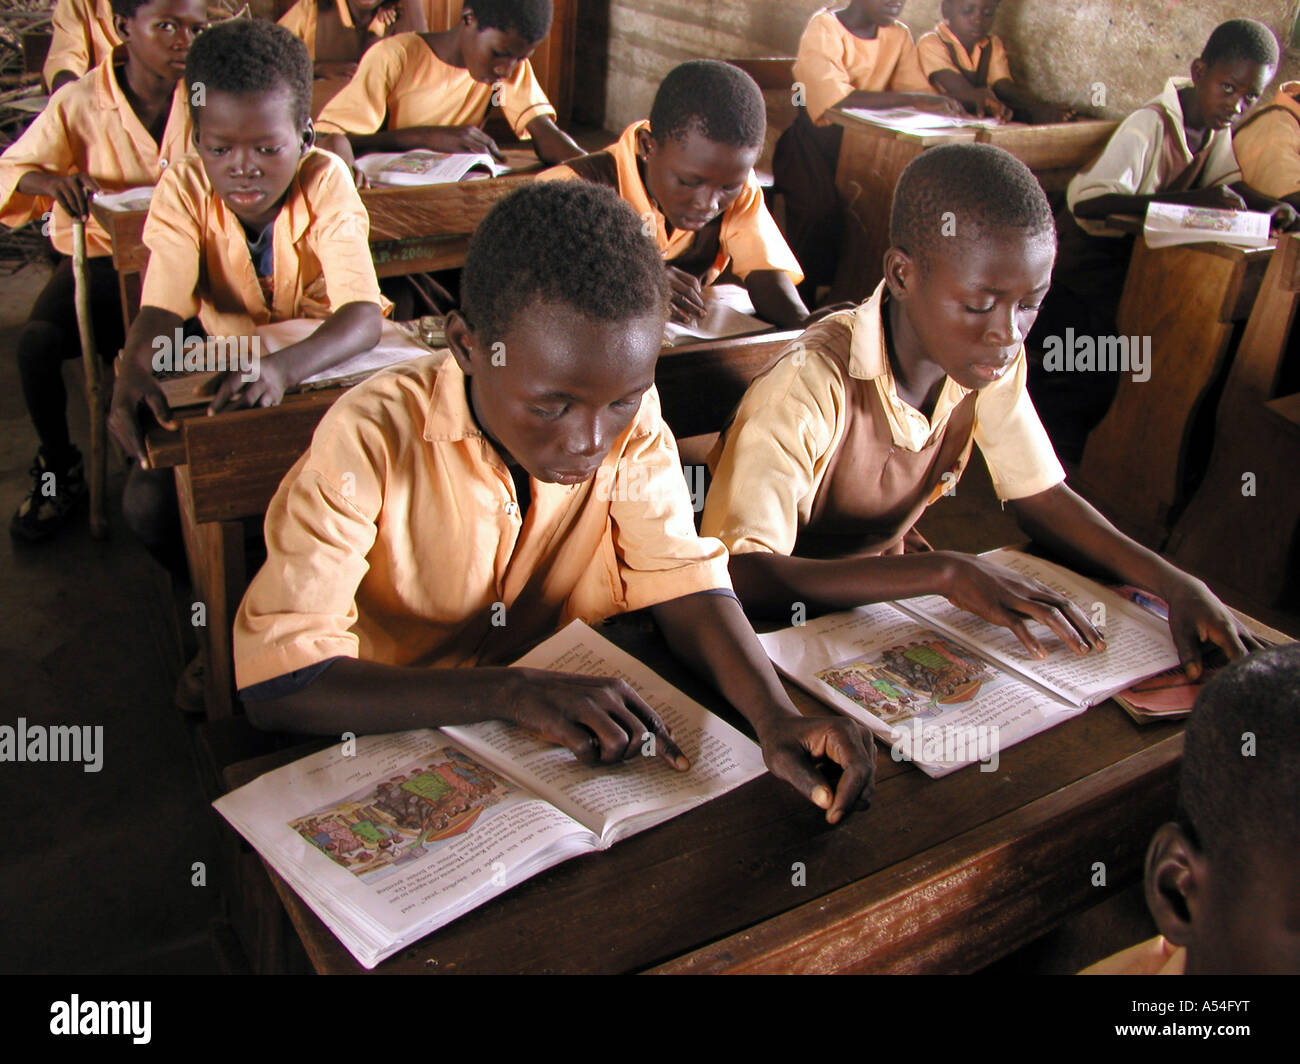 Painet hn2246 7828 children boys ghana school supported by crs bolgatanga country developing nation less economically - Stock Image